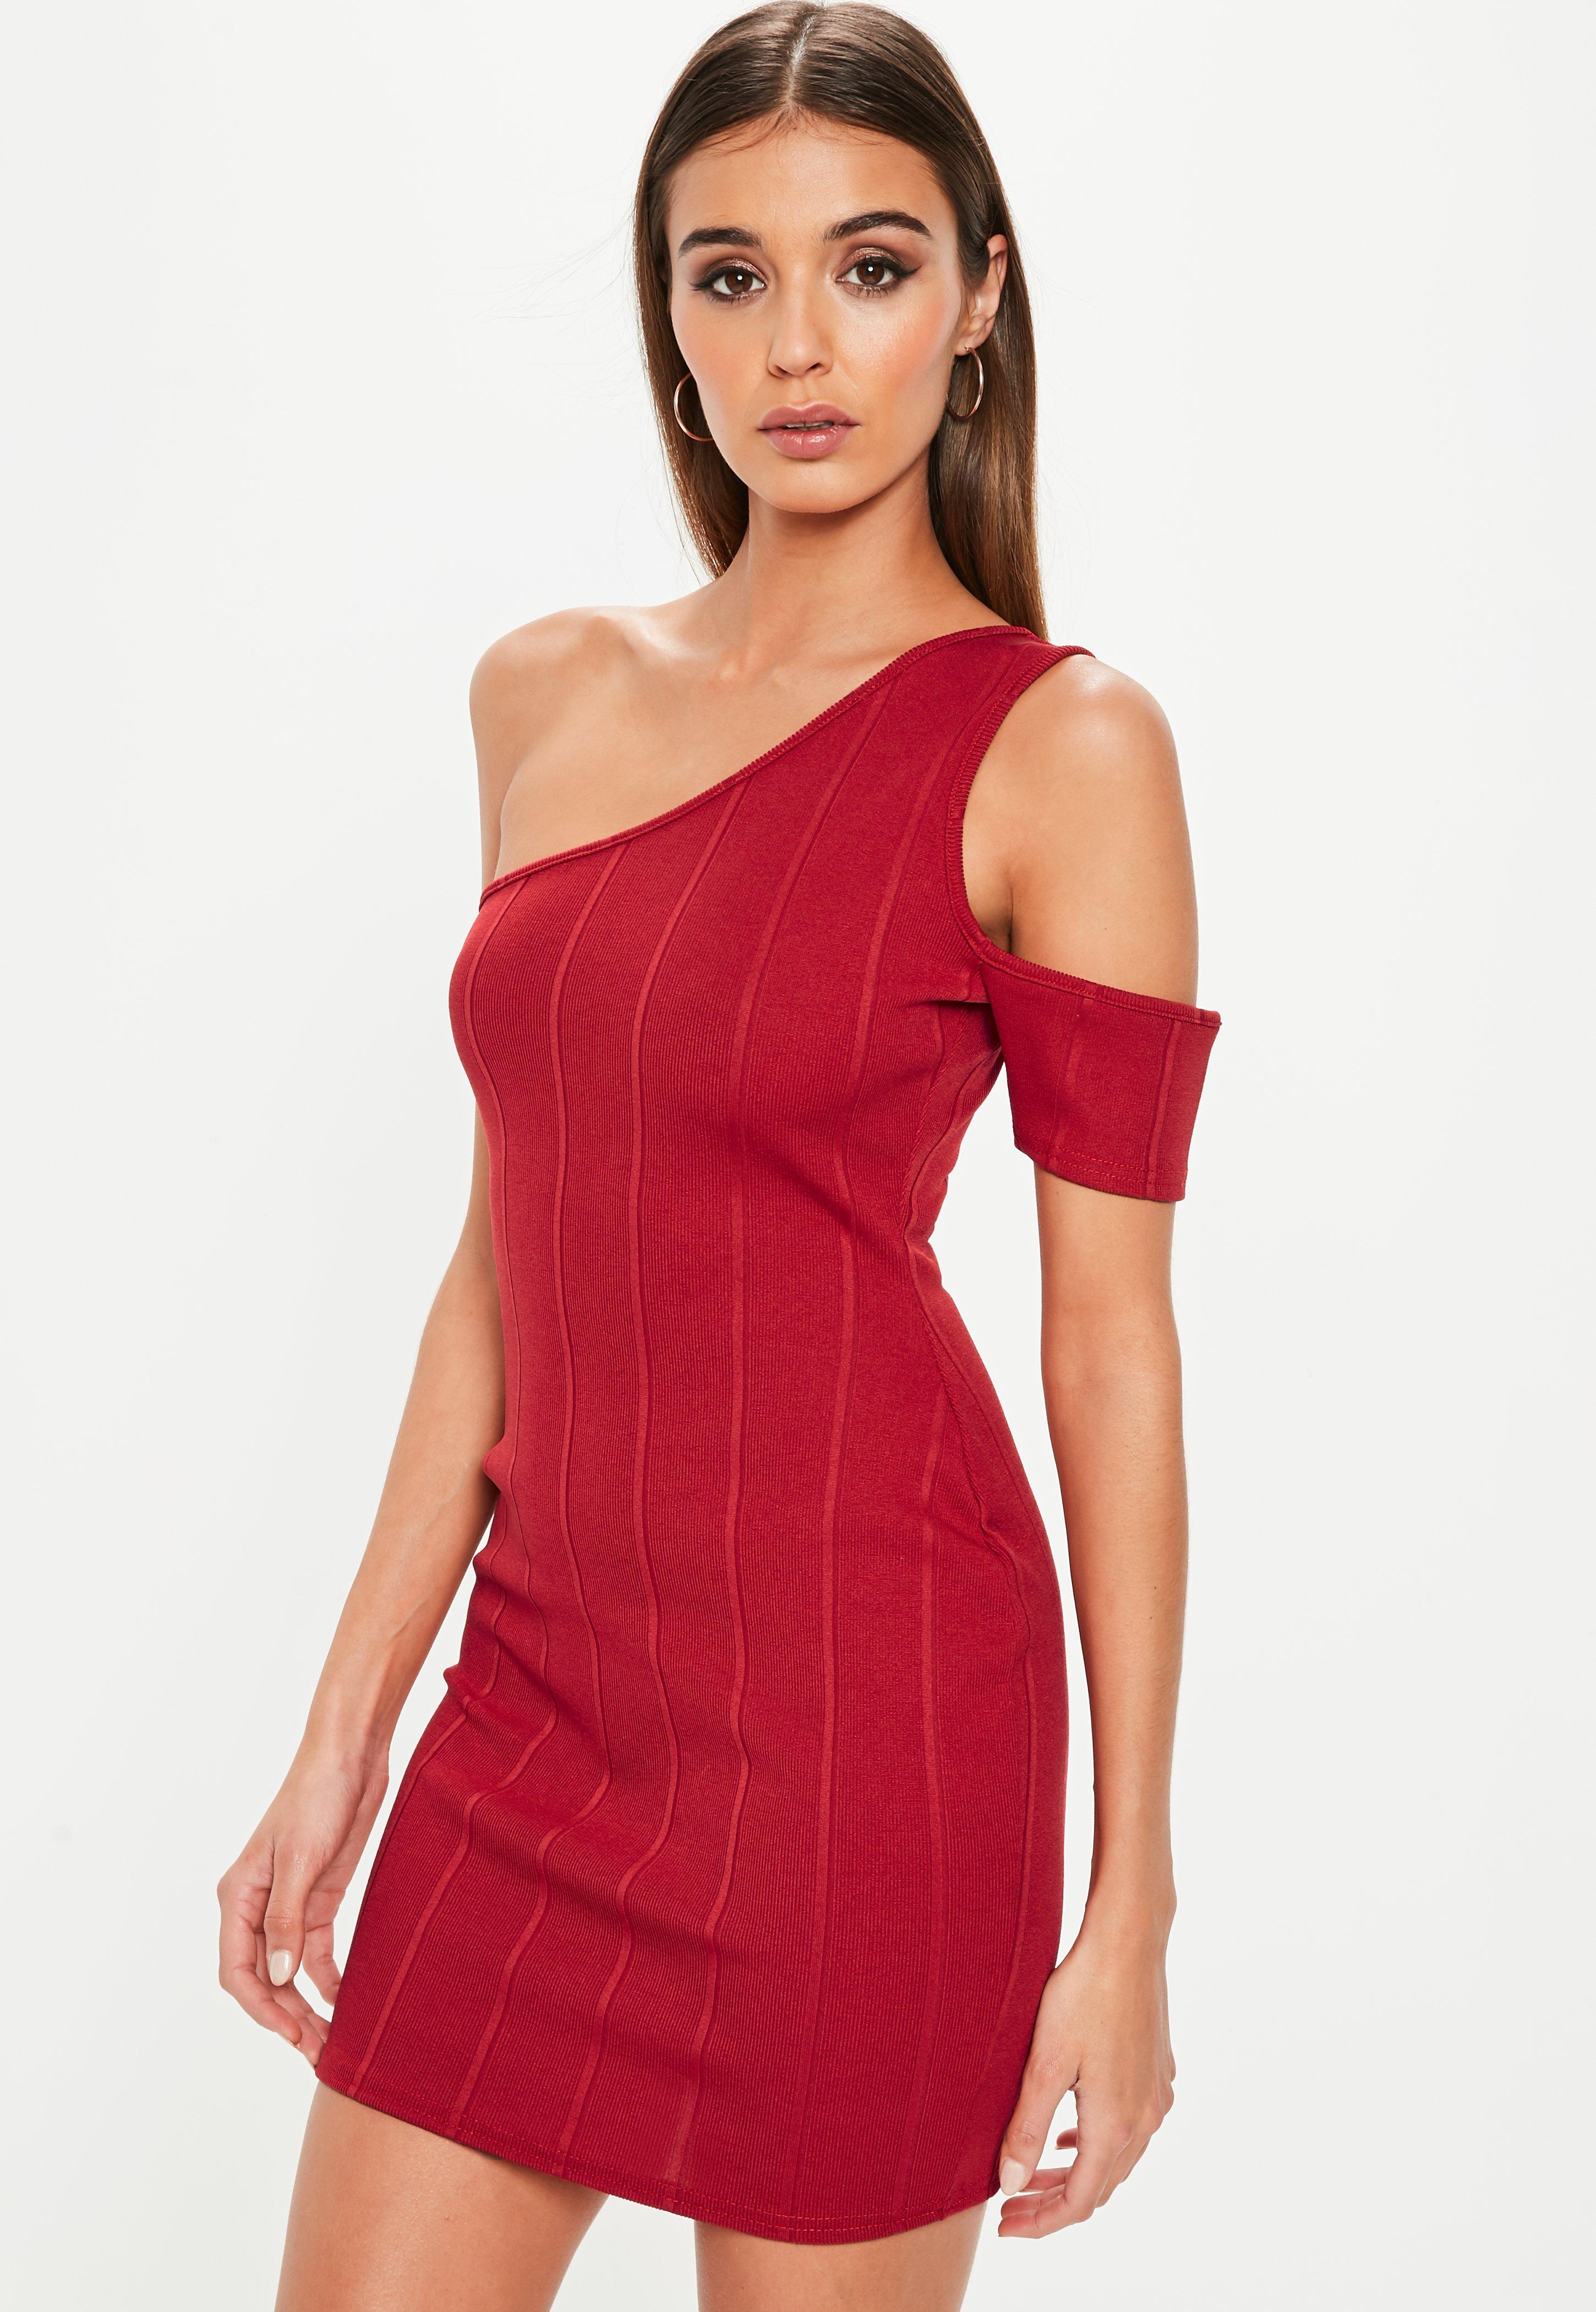 e702a72daa8 Missguided Red One Shoulder Bandage Cut Out Bodycon Mini Dress in ...